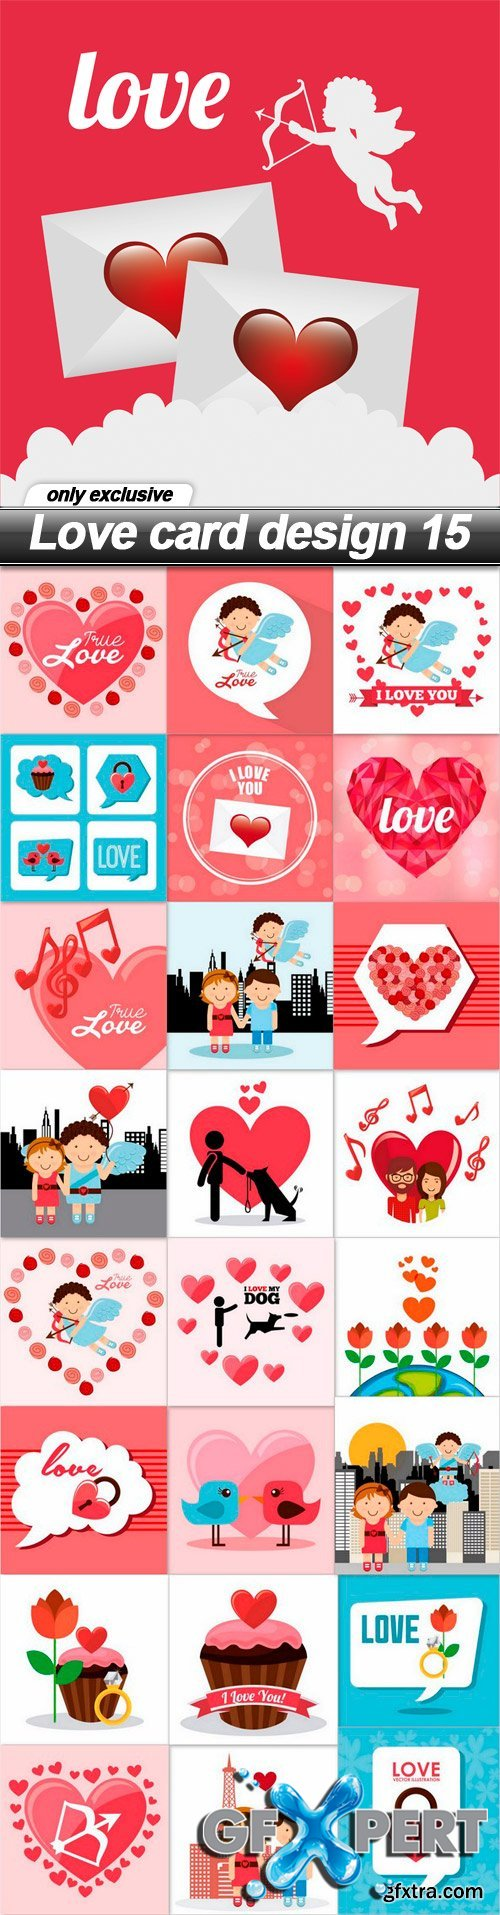 Love card design 15 - 25 EPS